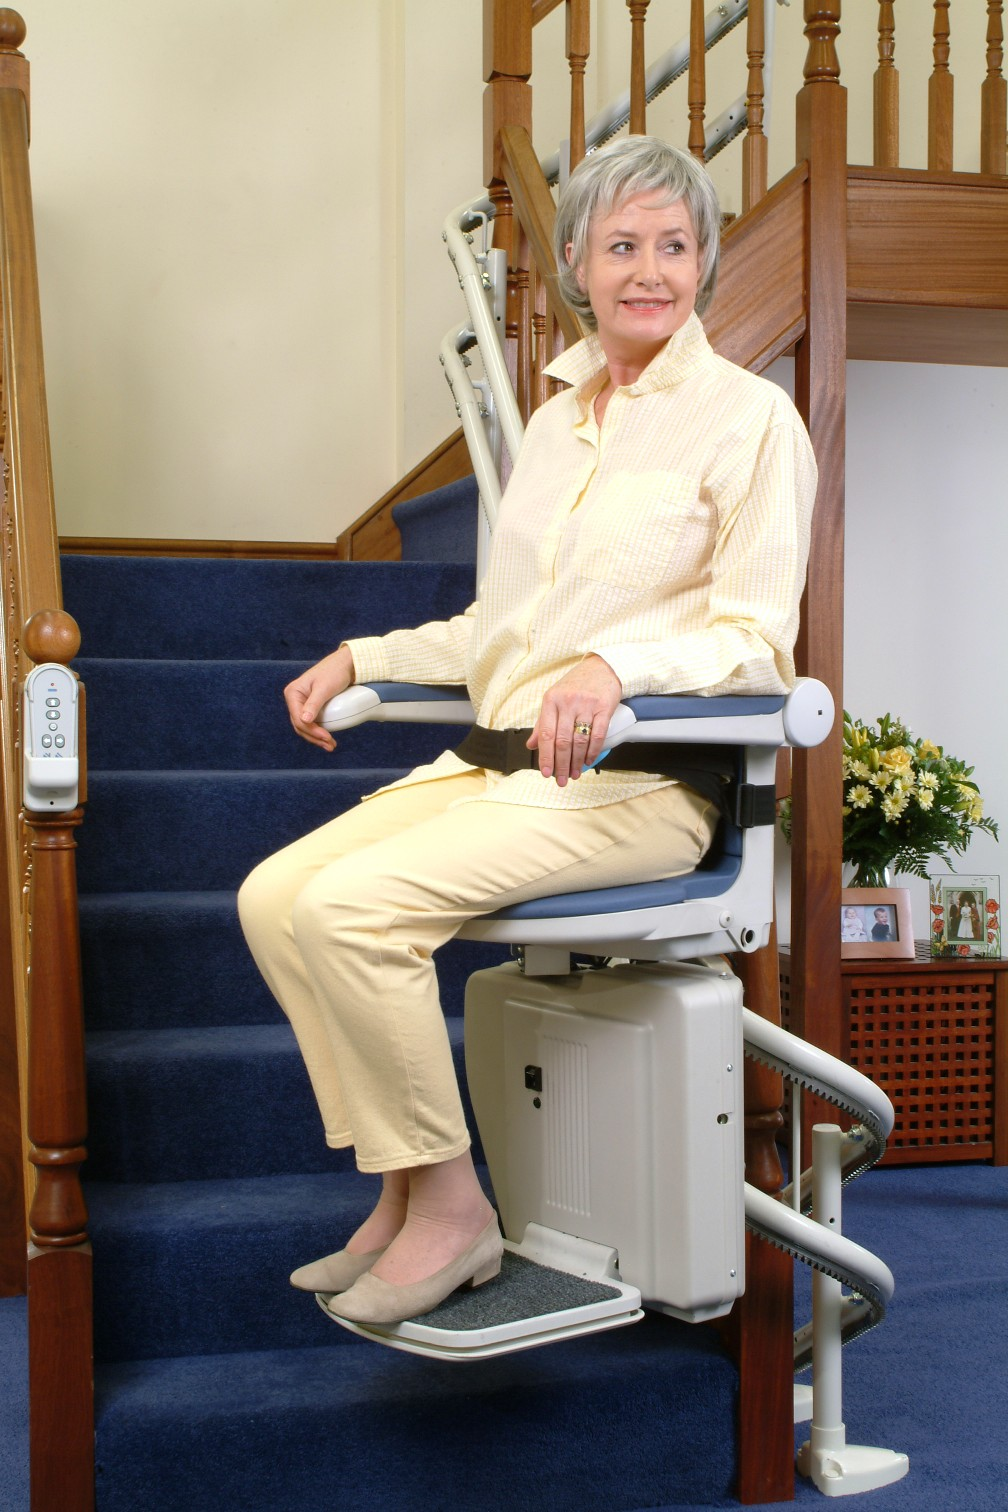 0ur Durable Medical Equipment: Wheelchairs MA, Lift Chairs